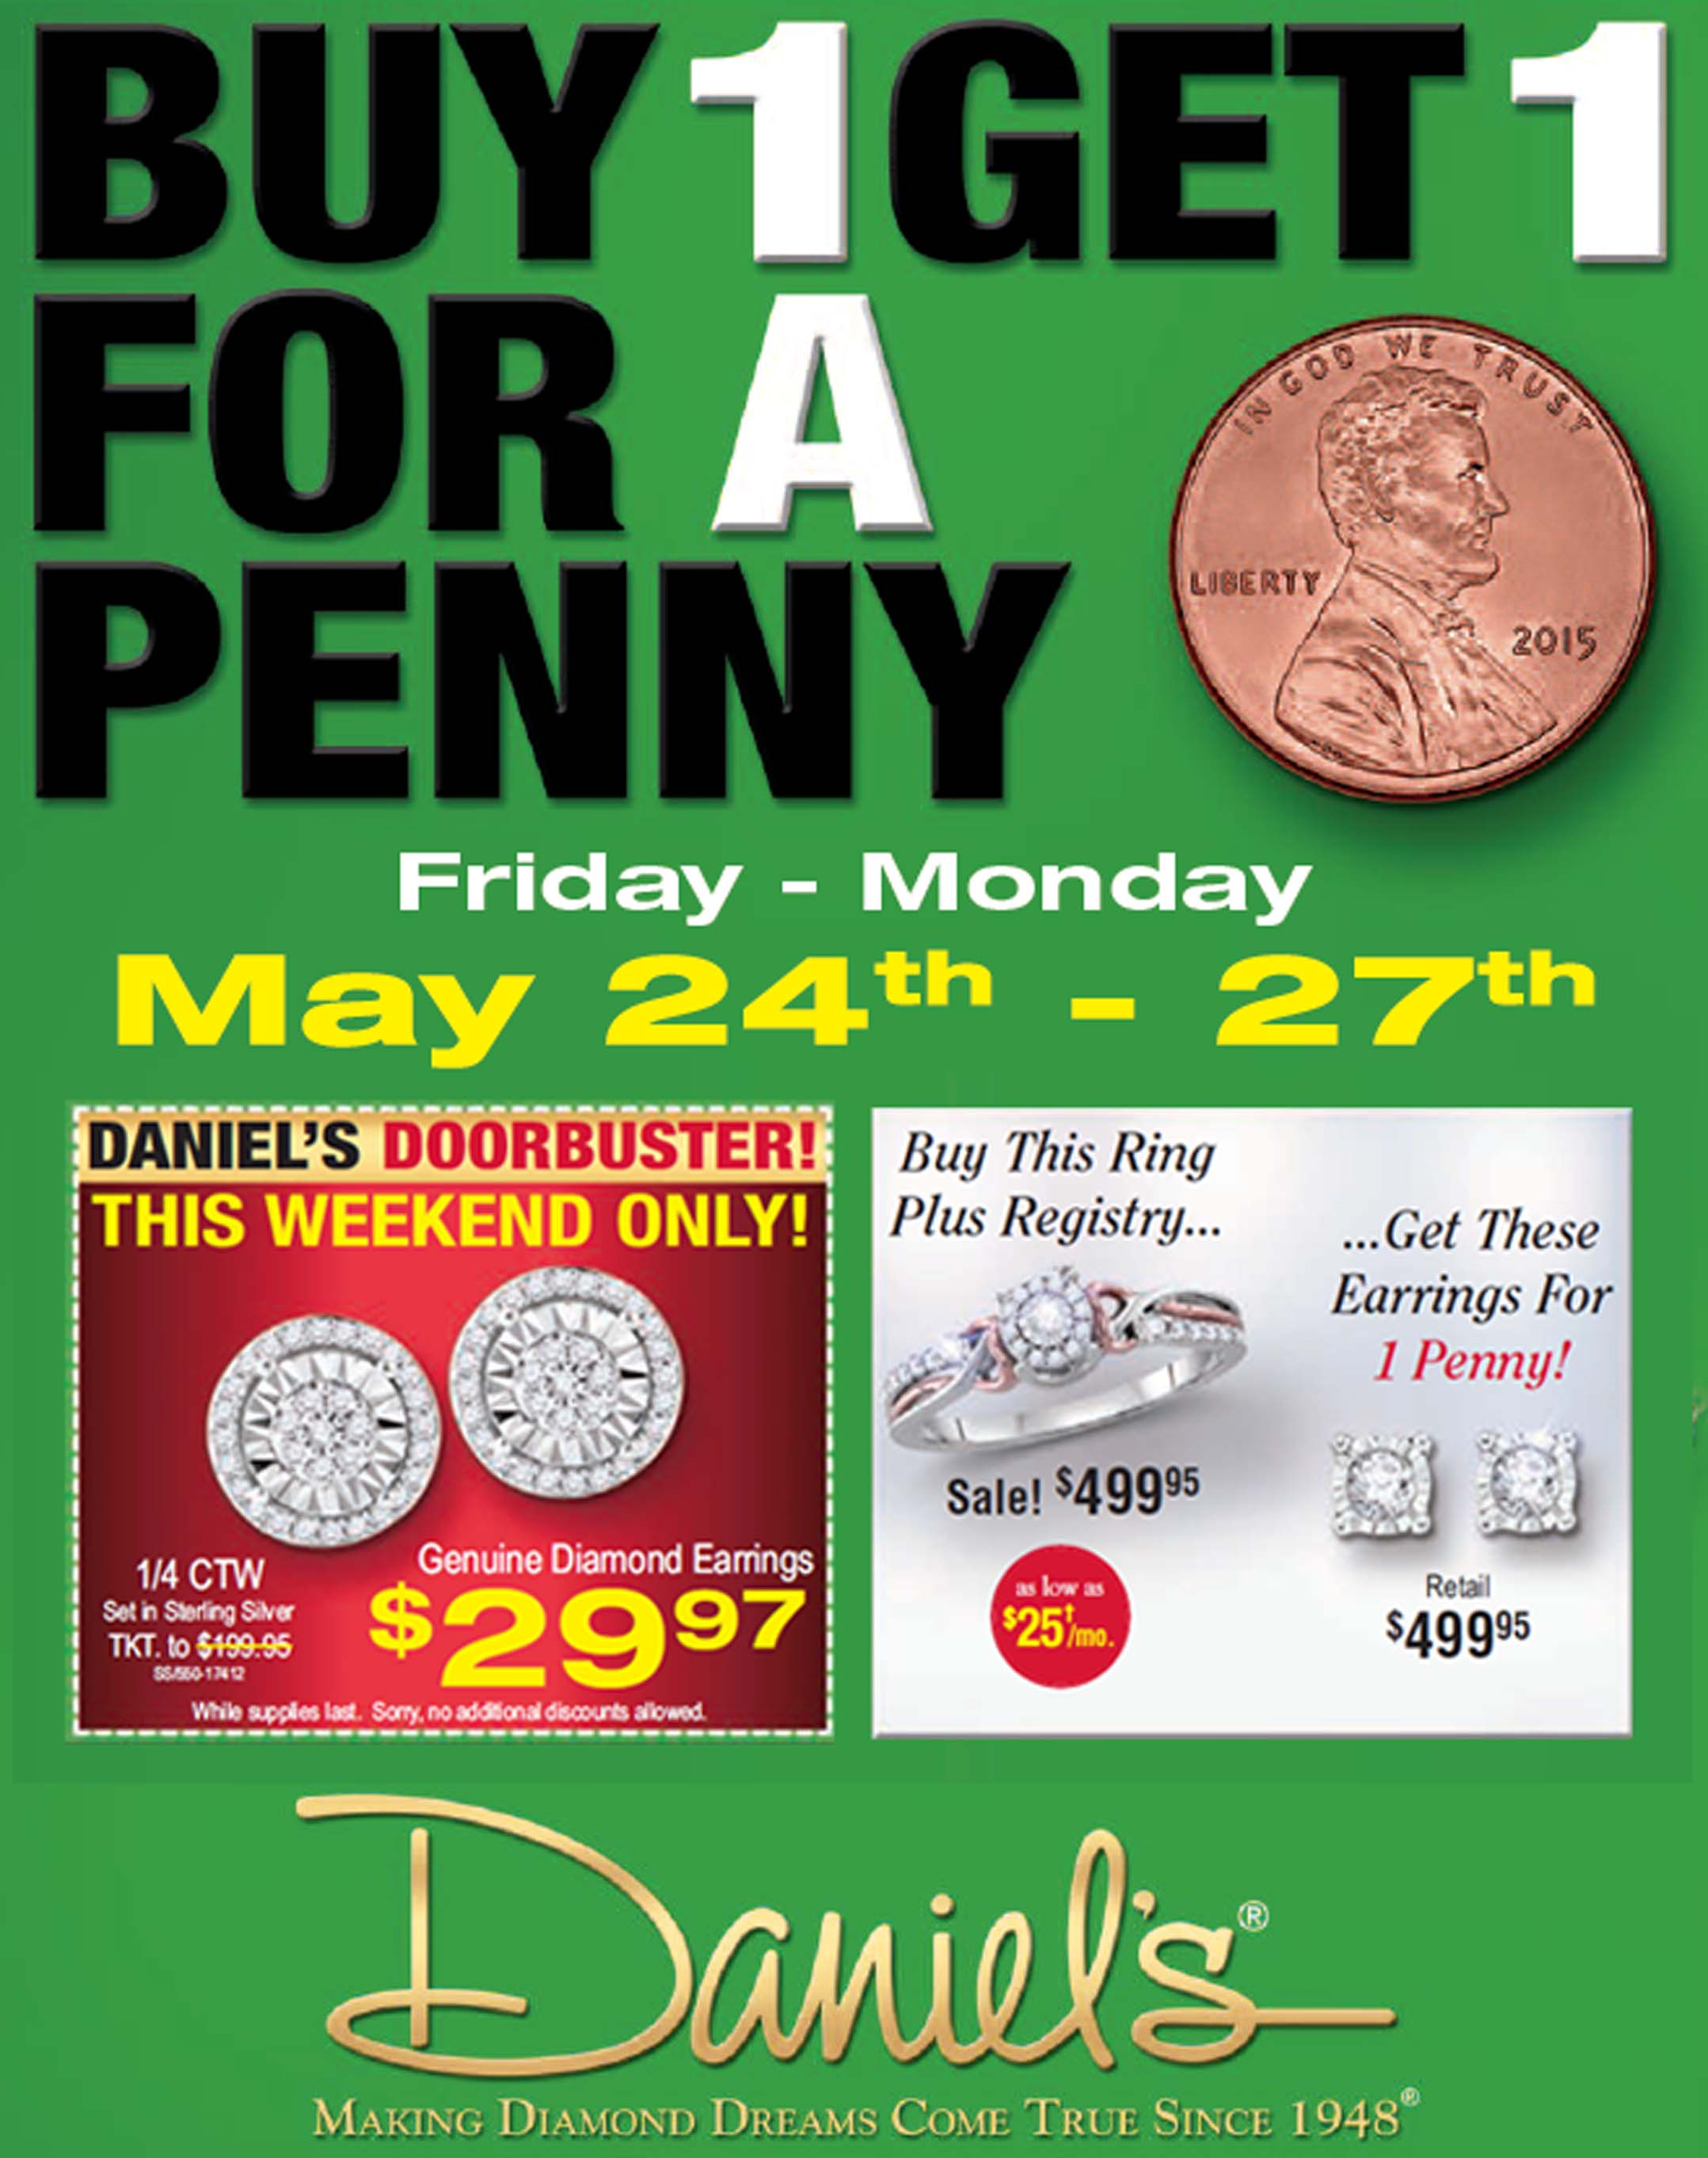 Buy 1, Get 1 for a Penny at Daniel's Jewelers